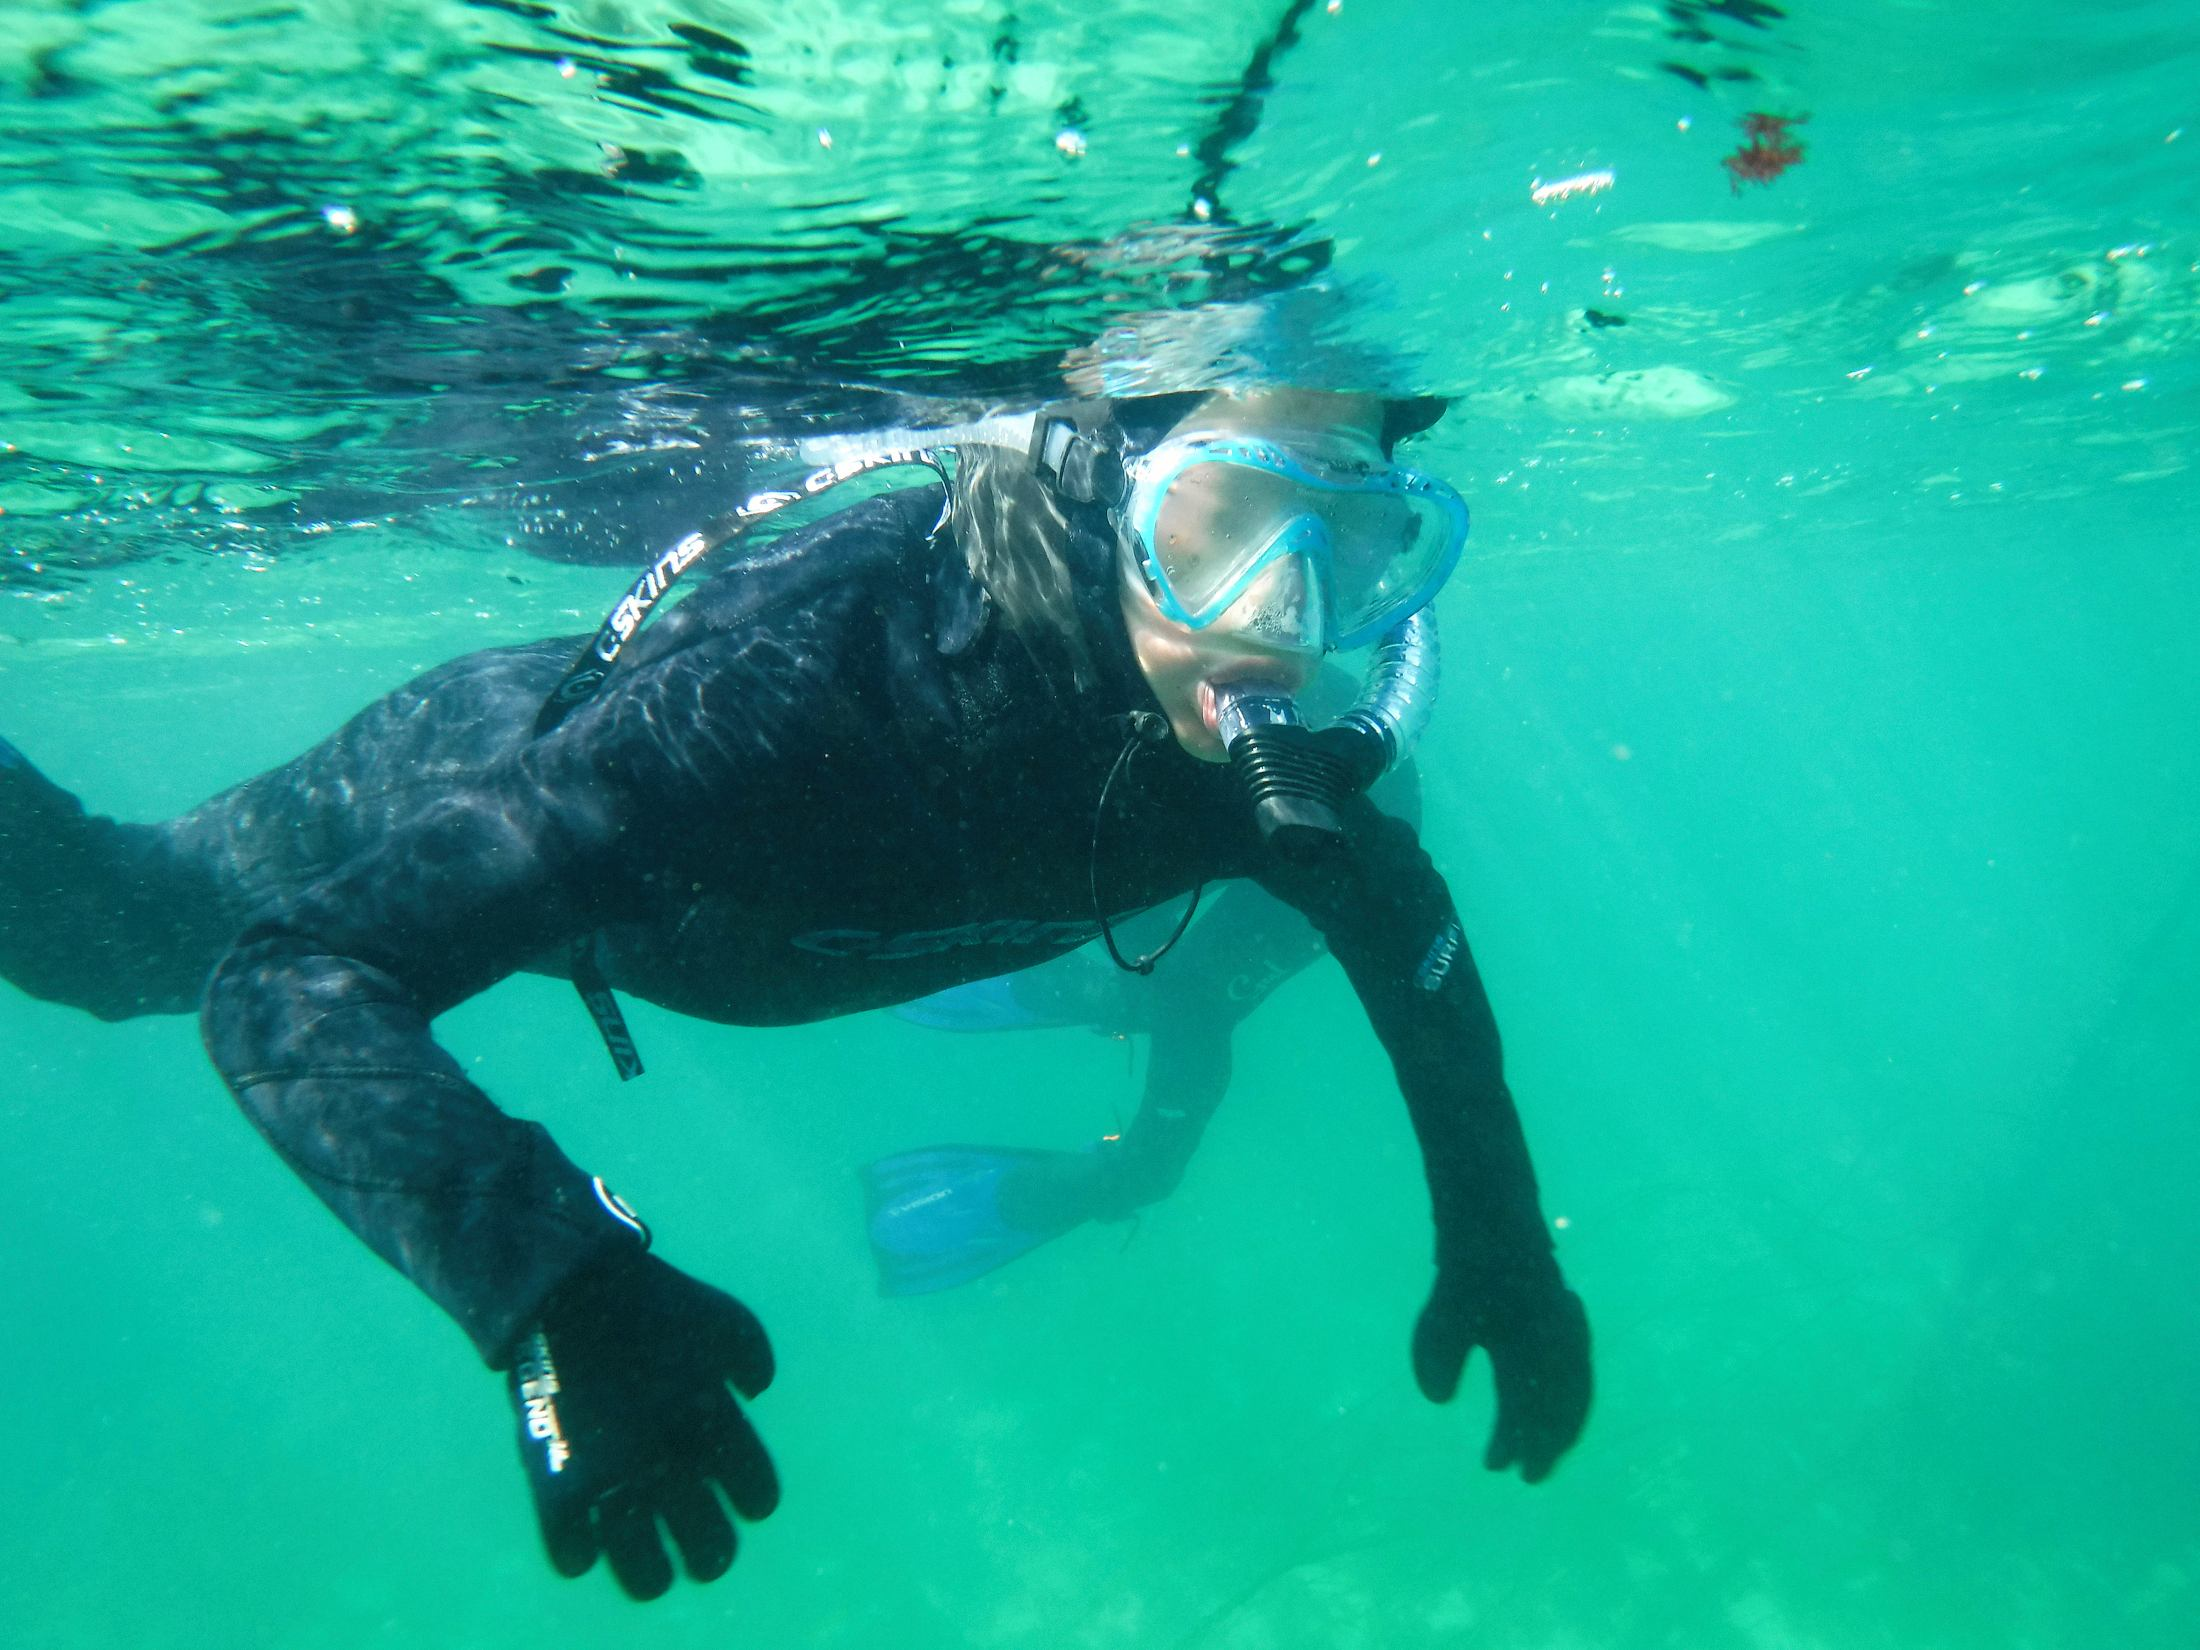 Barra Hebrides snorkelling adventure day out